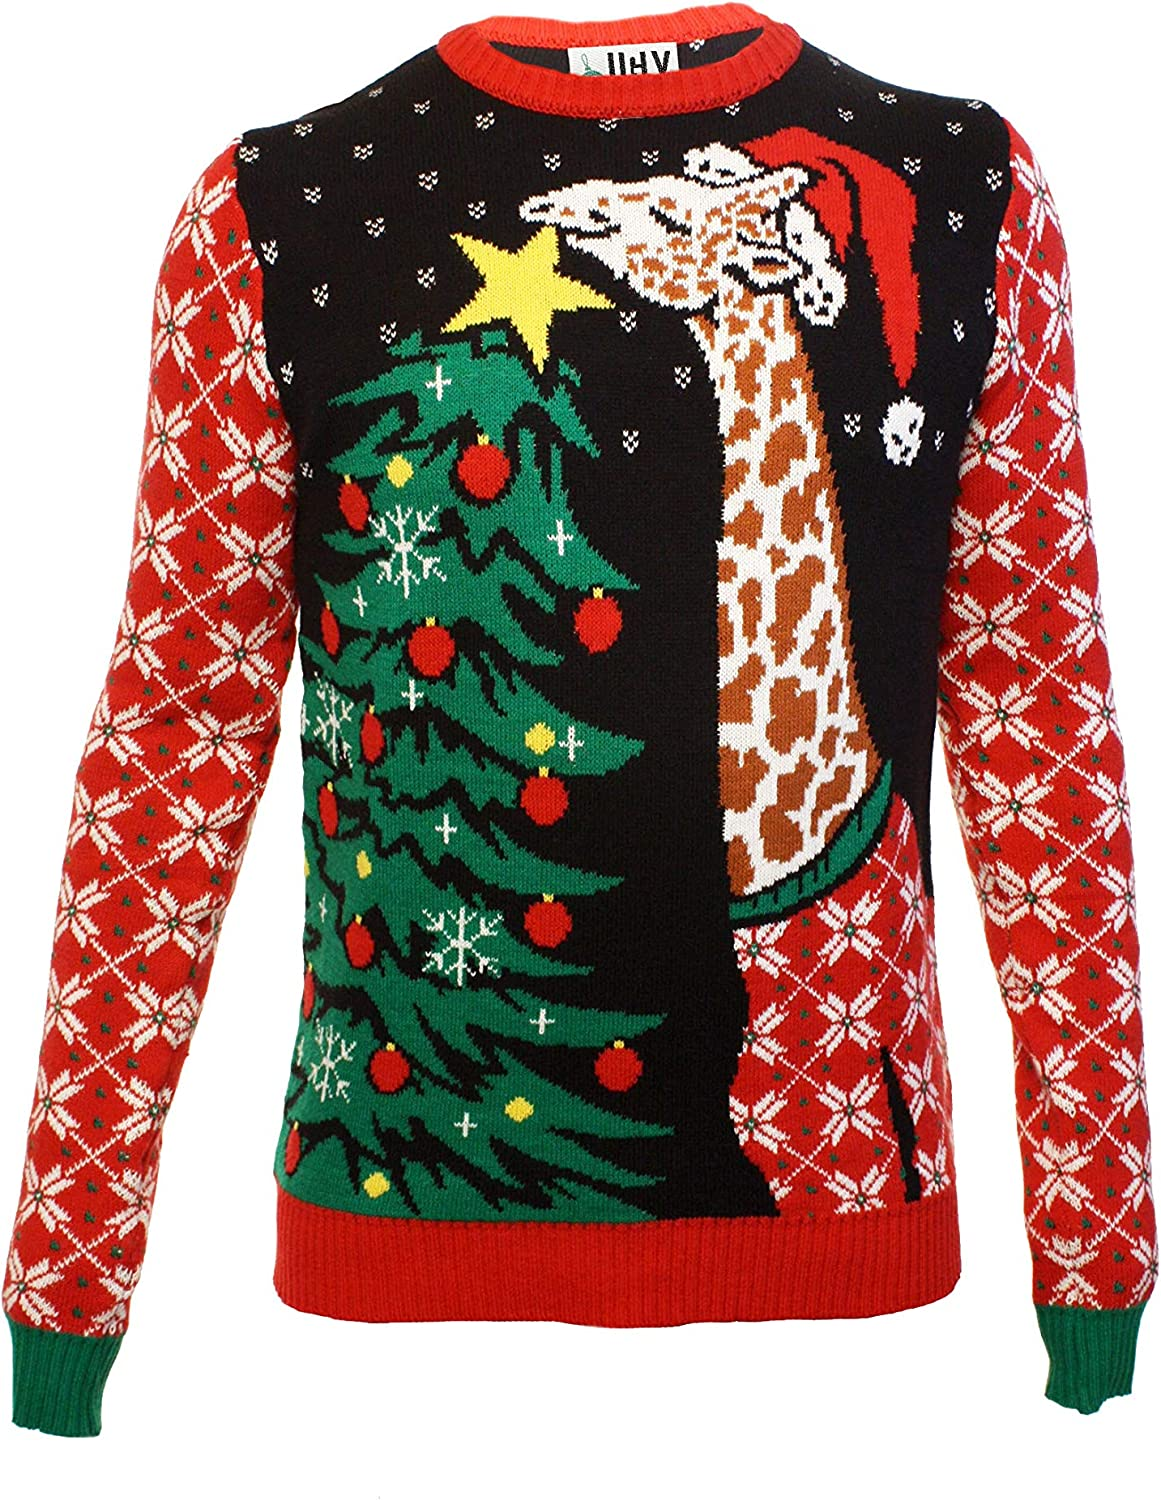 Ugly Christmas Party 推奨 Sweater Men's Animals Swea SALENEW大人気! Assorted Knitted